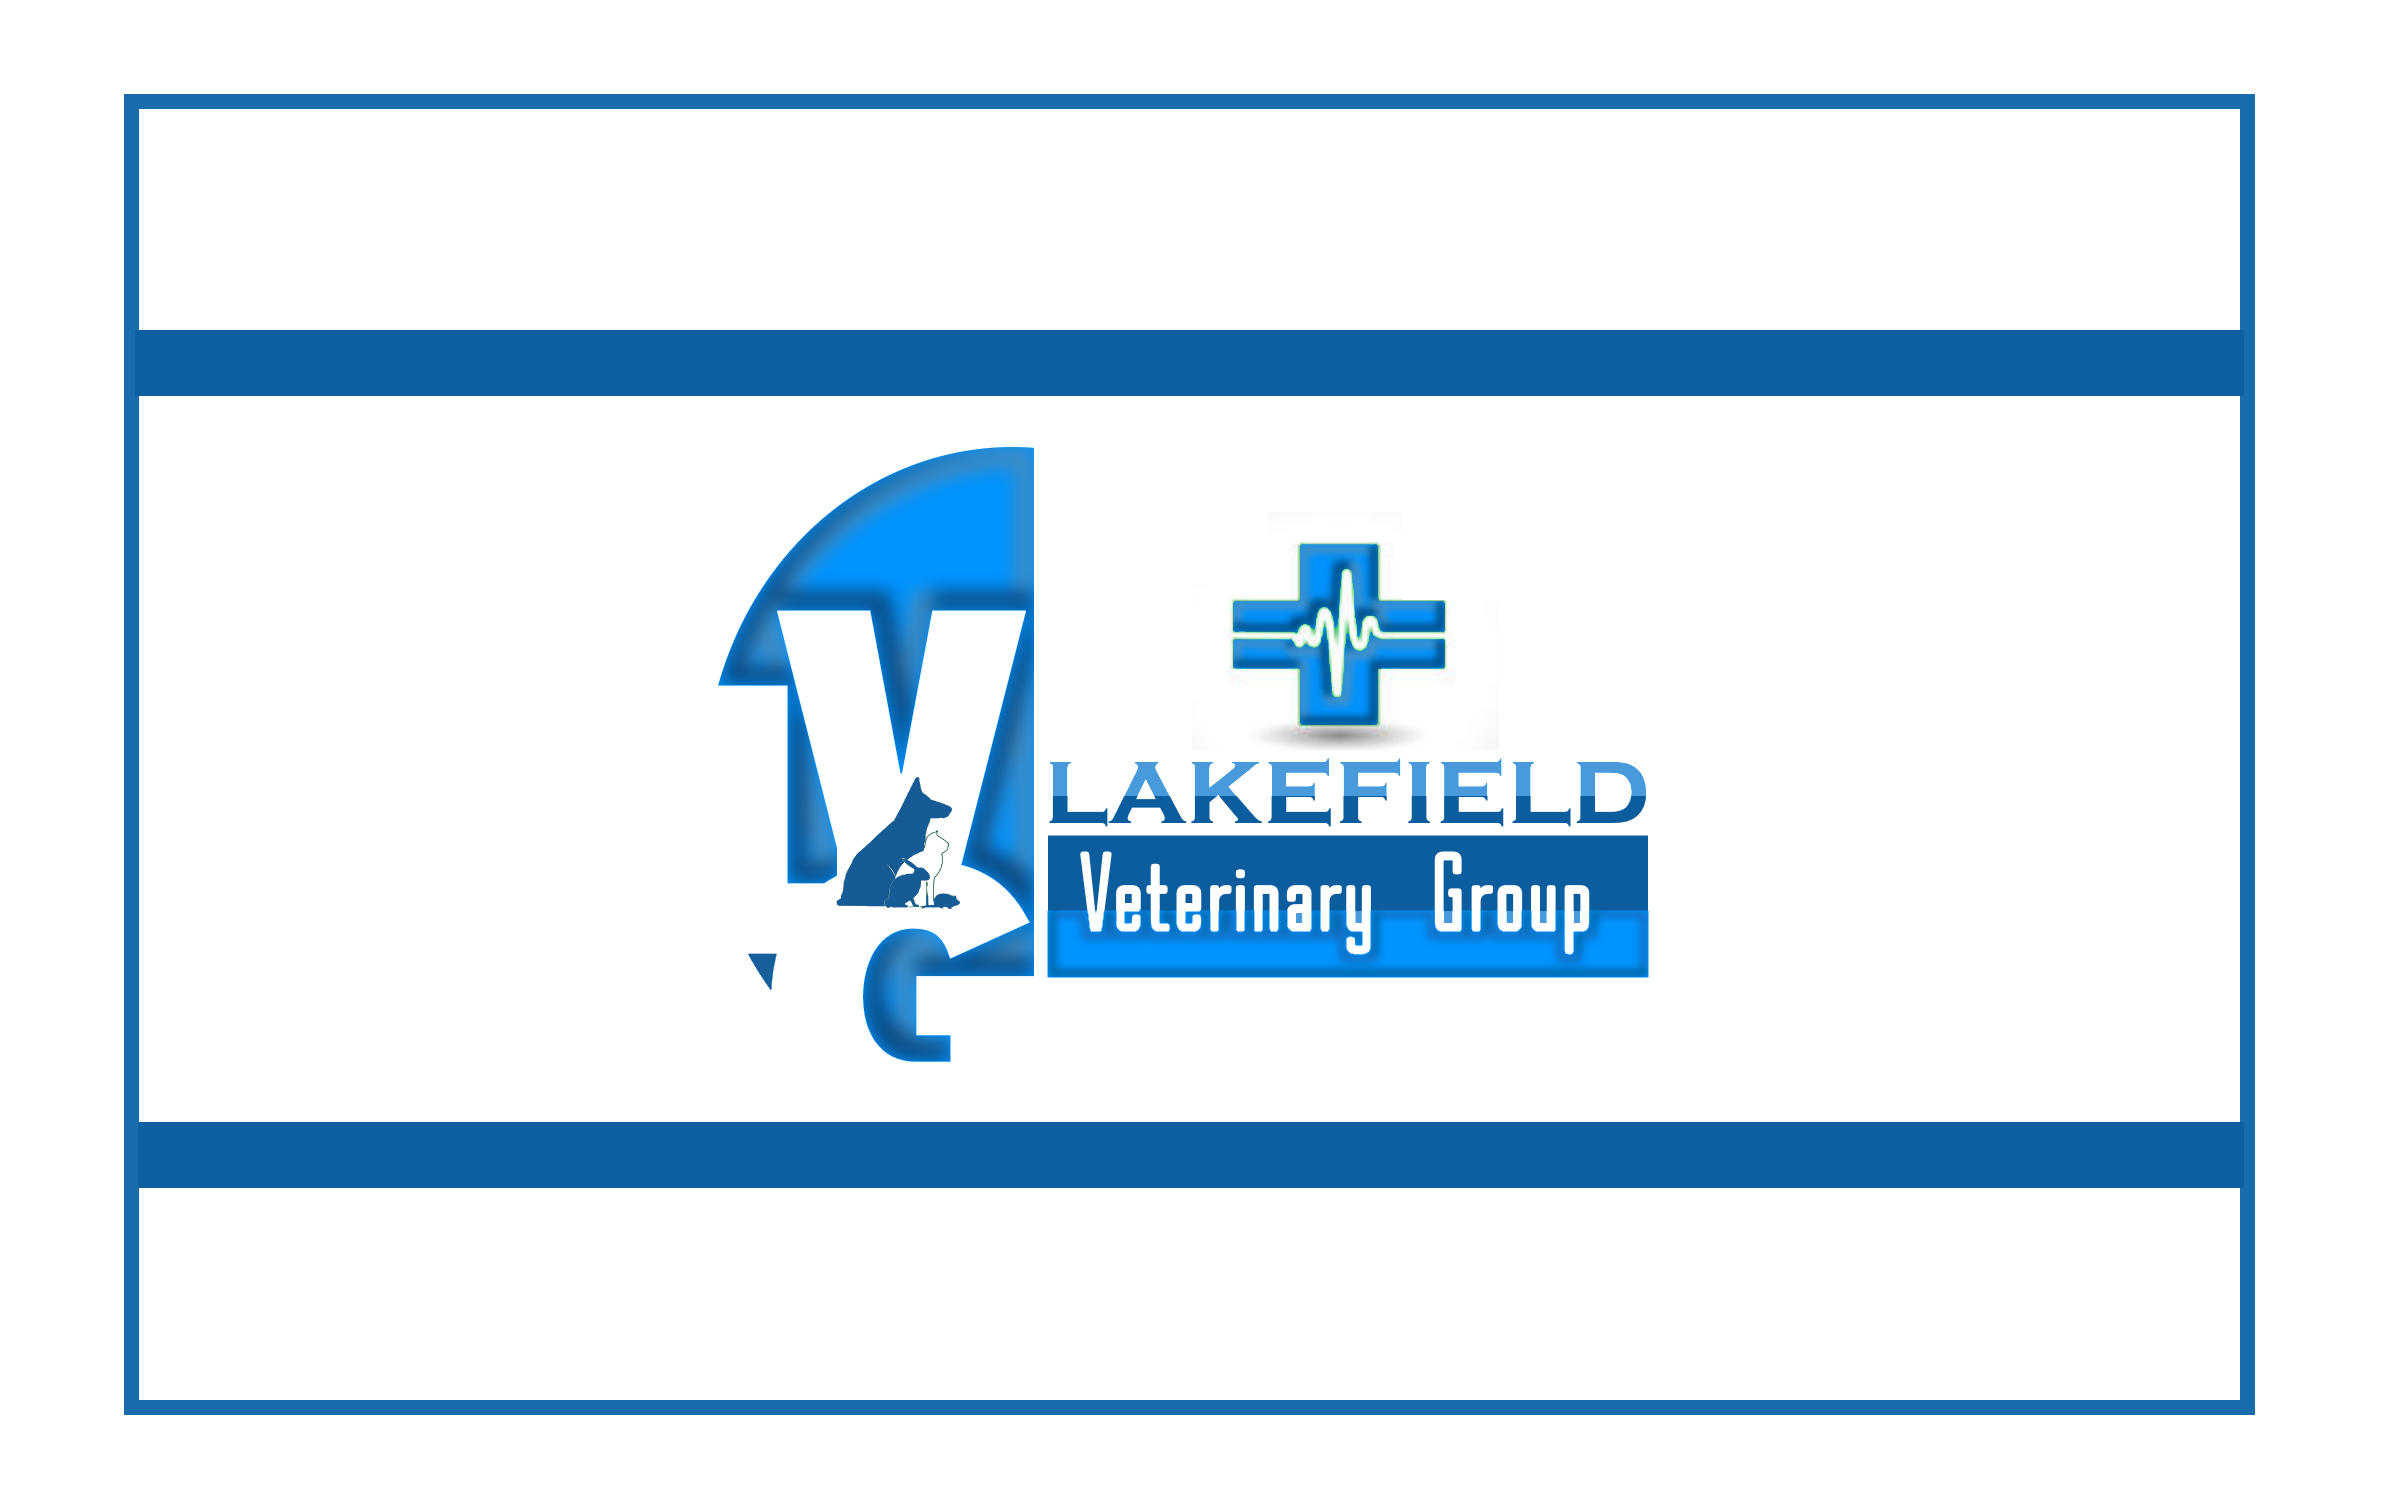 Logo Design by Roberto Bassi - Entry No. 63 in the Logo Design Contest Inspiring Logo Design for Lakefield Veterinary Group.